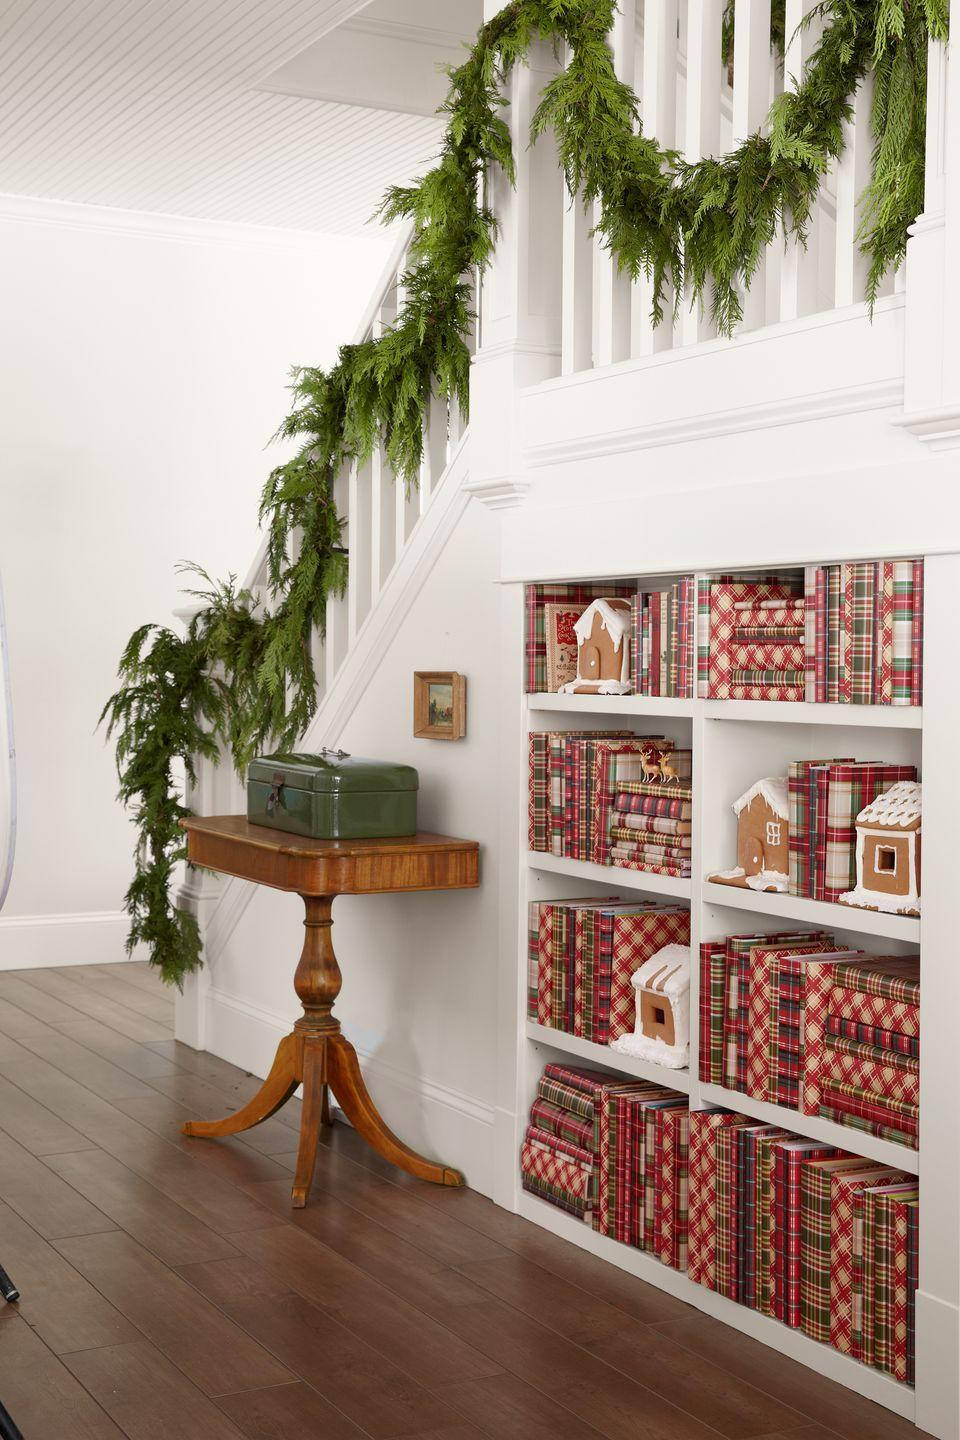 """<p>Easy-to-overlook bookcases get a graphic jolt by covering hardbacks with affordable plaid gift wrap.</p><p><a class=""""link rapid-noclick-resp"""" href=""""https://www.amazon.com/s/ref=nb_sb_noss?url=search-alias%3Dgarden&field-keywords=christmas+garland&tag=syn-yahoo-20&ascsubtag=%5Bartid%7C10050.g.1247%5Bsrc%7Cyahoo-us"""" rel=""""nofollow noopener"""" target=""""_blank"""" data-ylk=""""slk:SHOP GARLAND"""">SHOP GARLAND</a> </p>"""